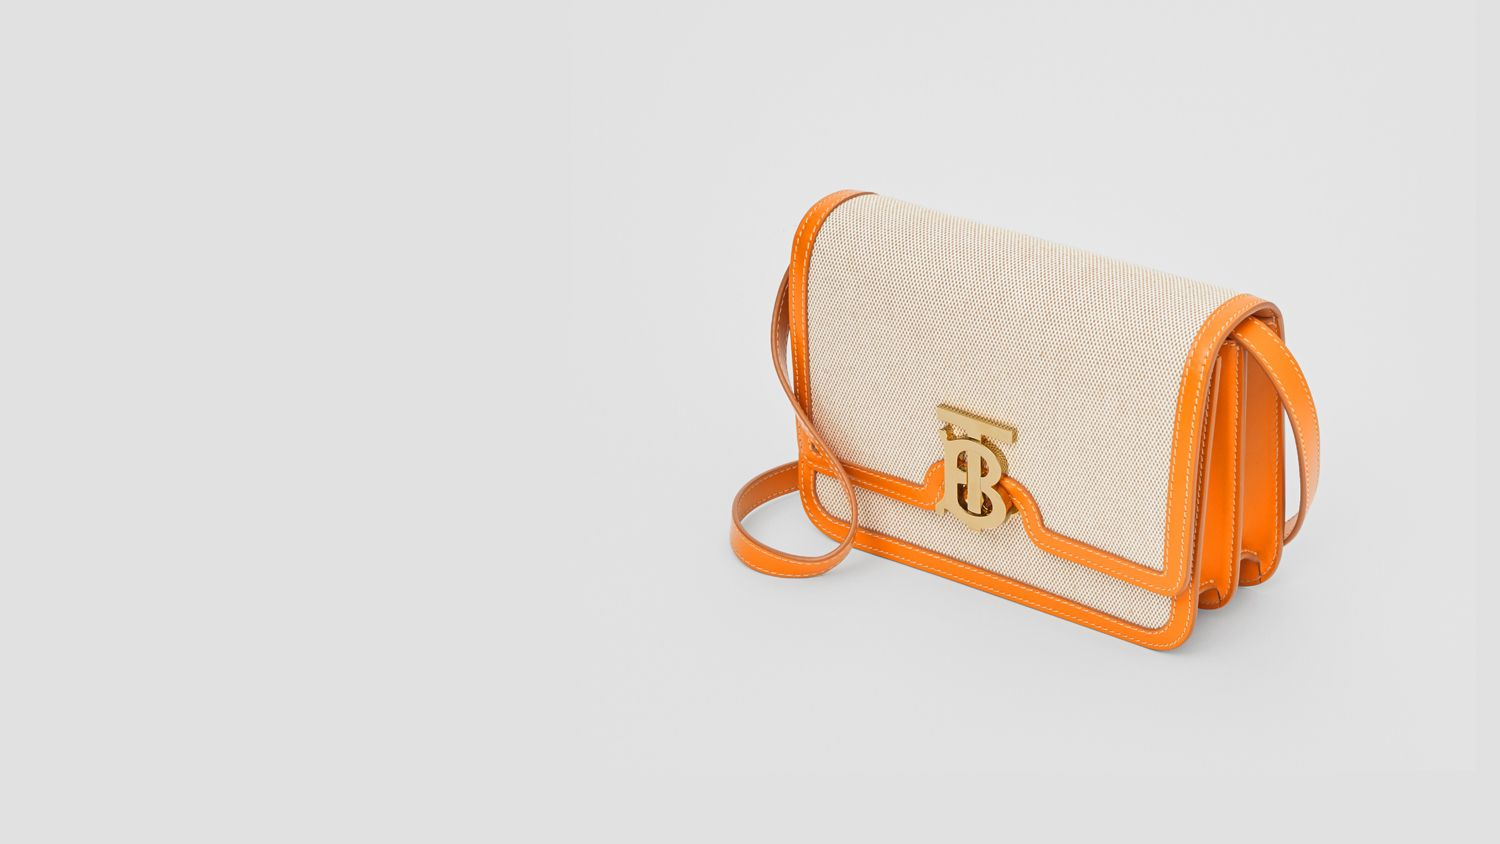 Introducing The TB Bag Pop-up Exclusive